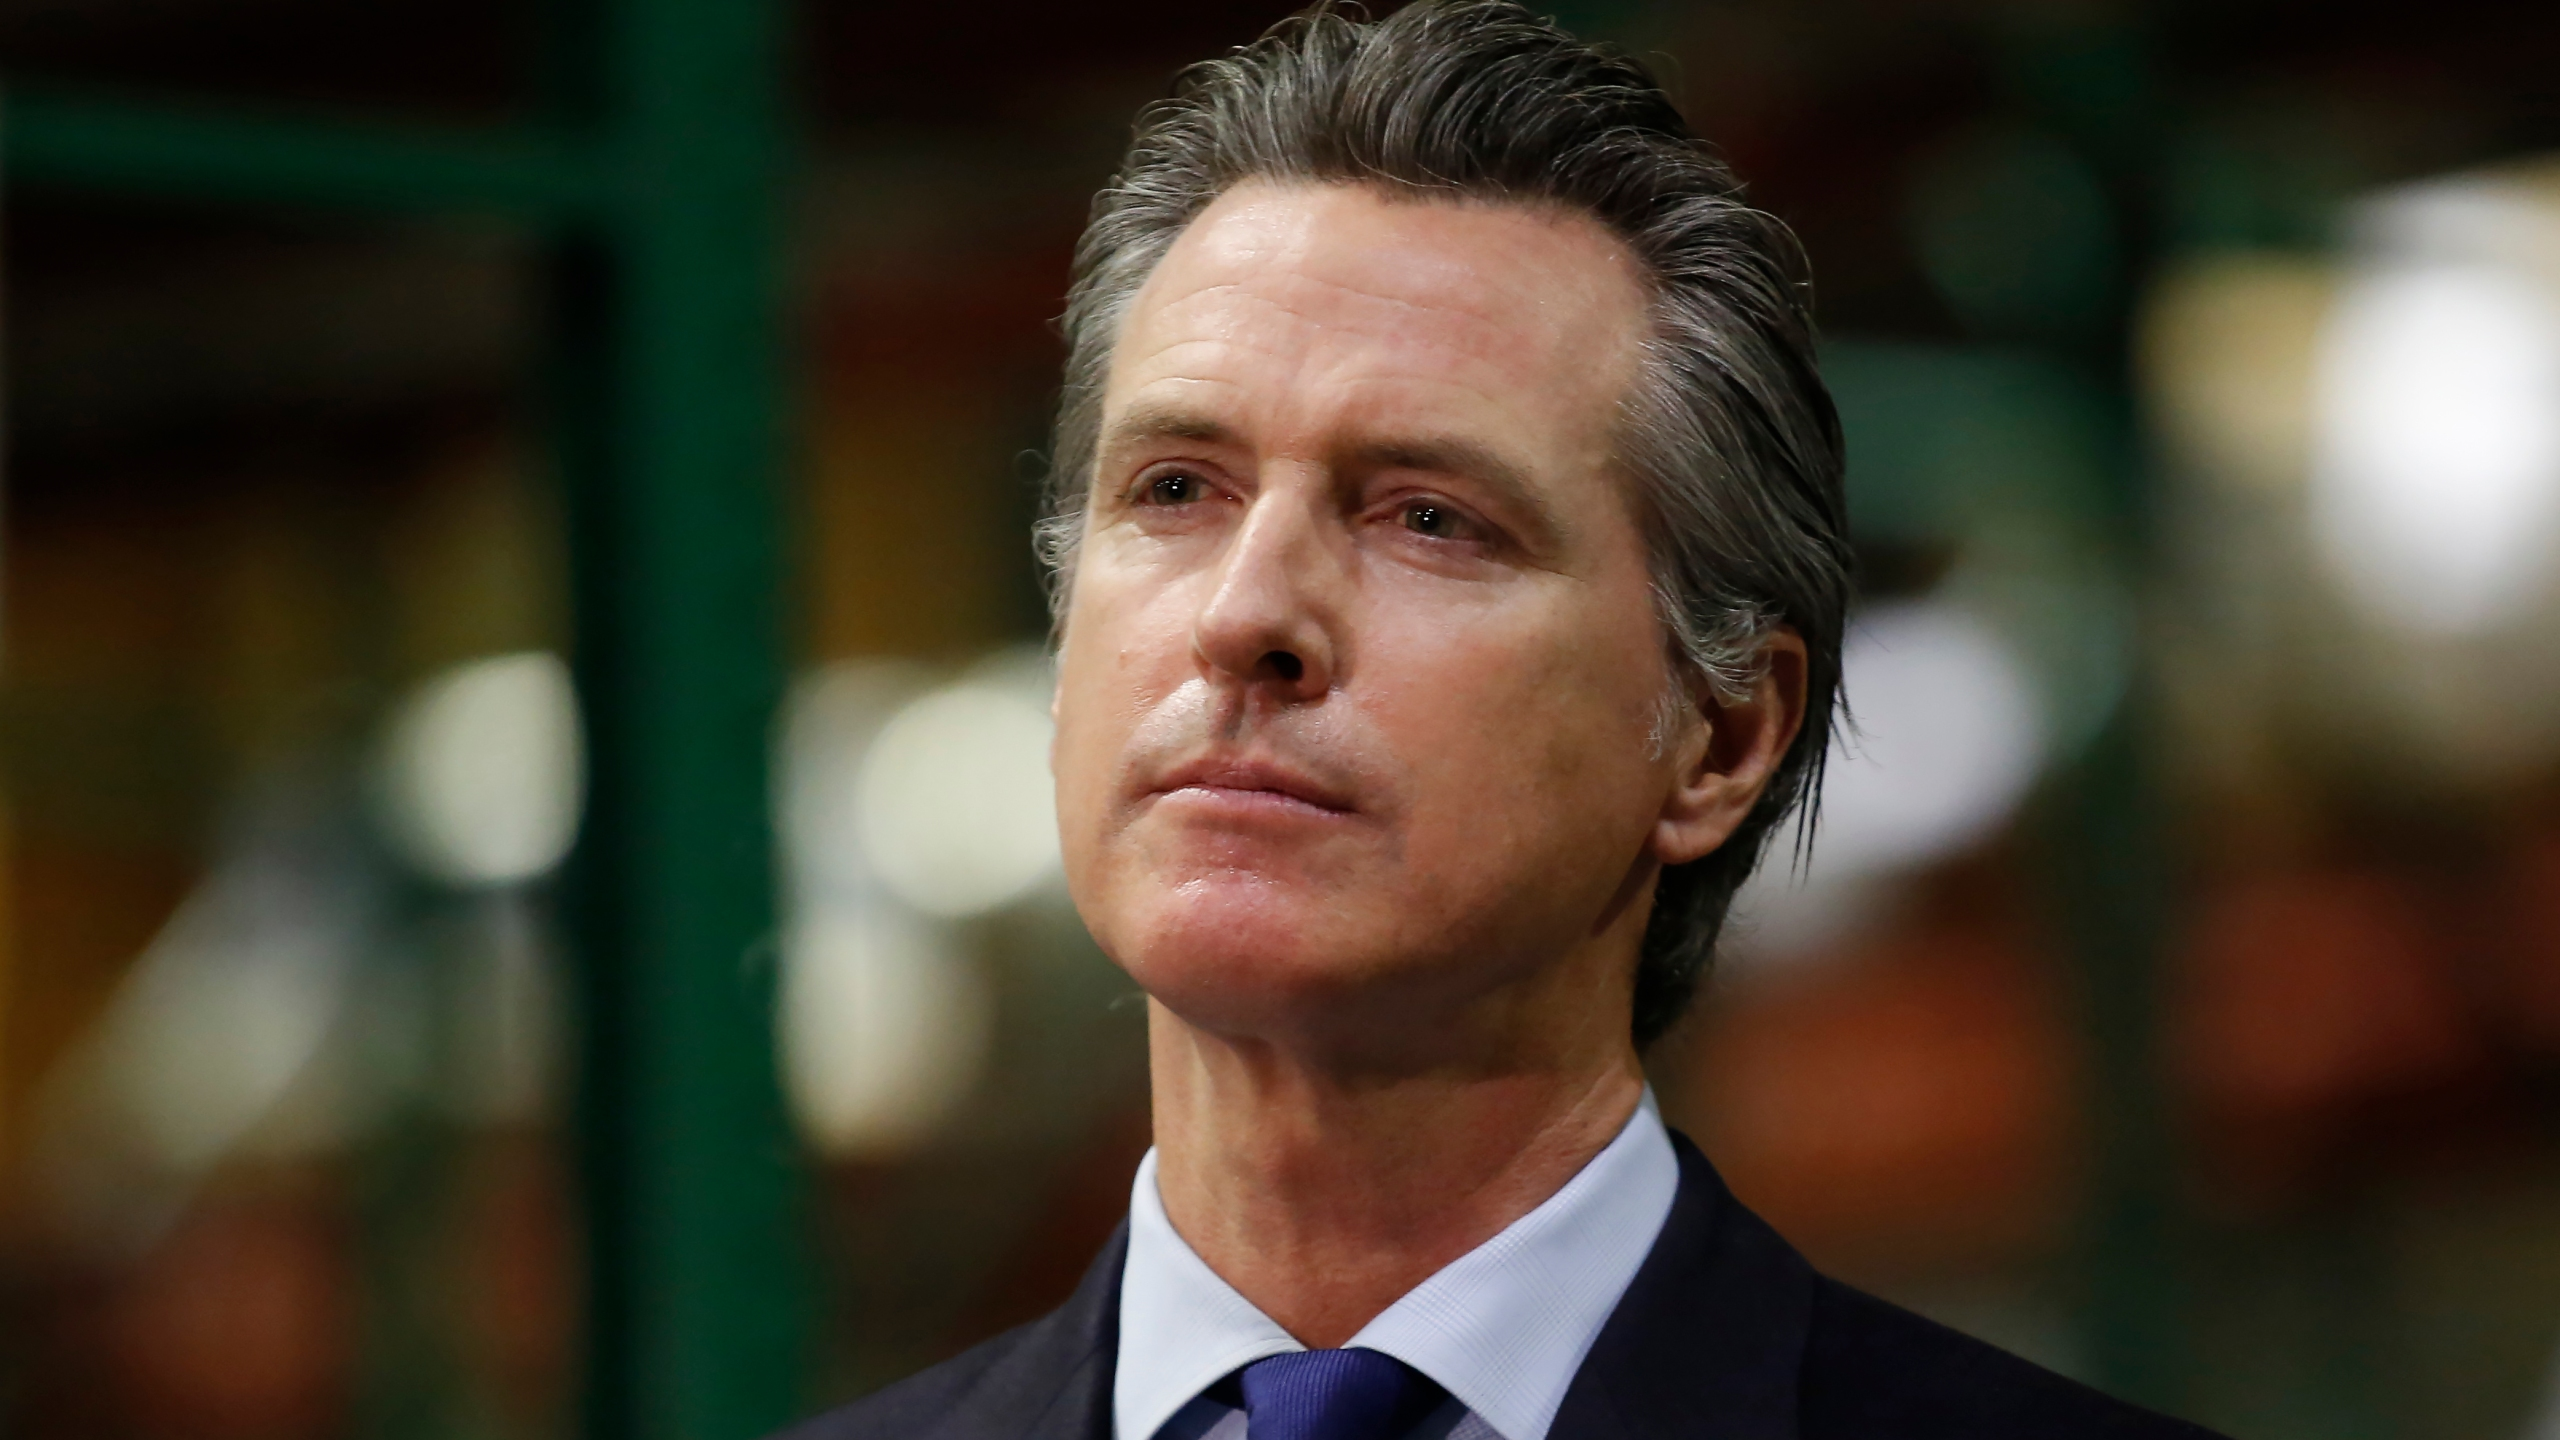 Gov. Gavin Newsom listens to a reporter's question during a news conference in Rancho Cordova on June 26, 2020. (Rich Pedroncelli / AP)